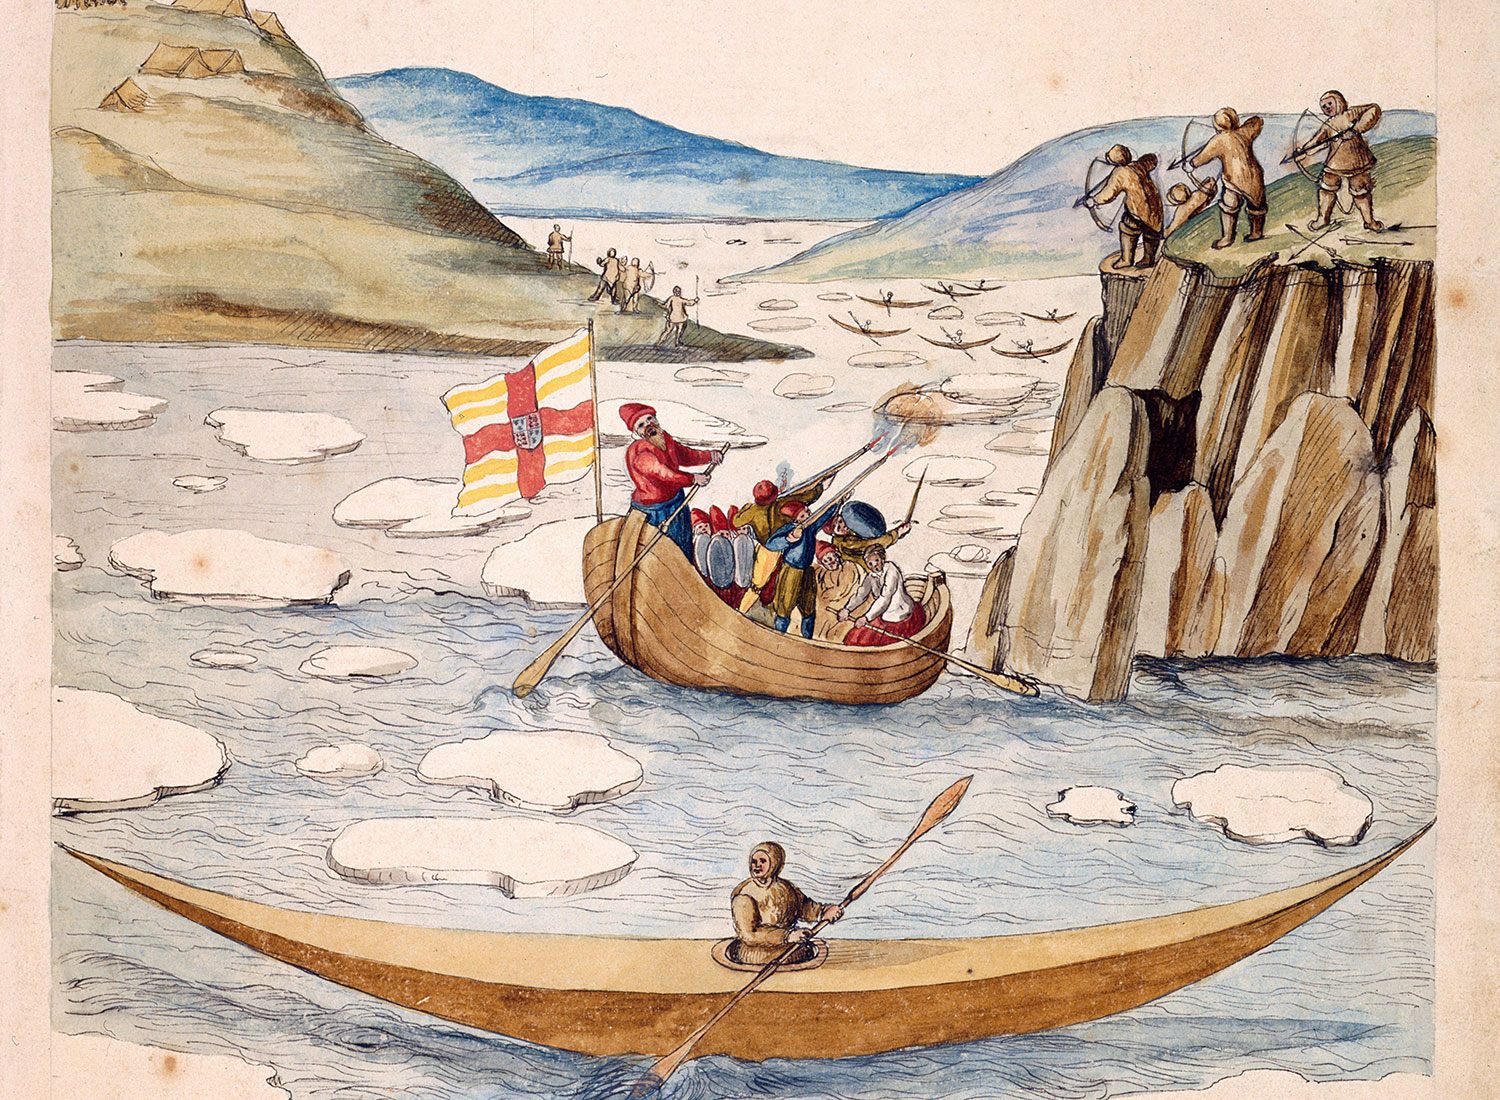 Illustration of Frobisher's encounter with Inuit, possible at 'Bloody Point', by John White. c.1577.  © British Library Board